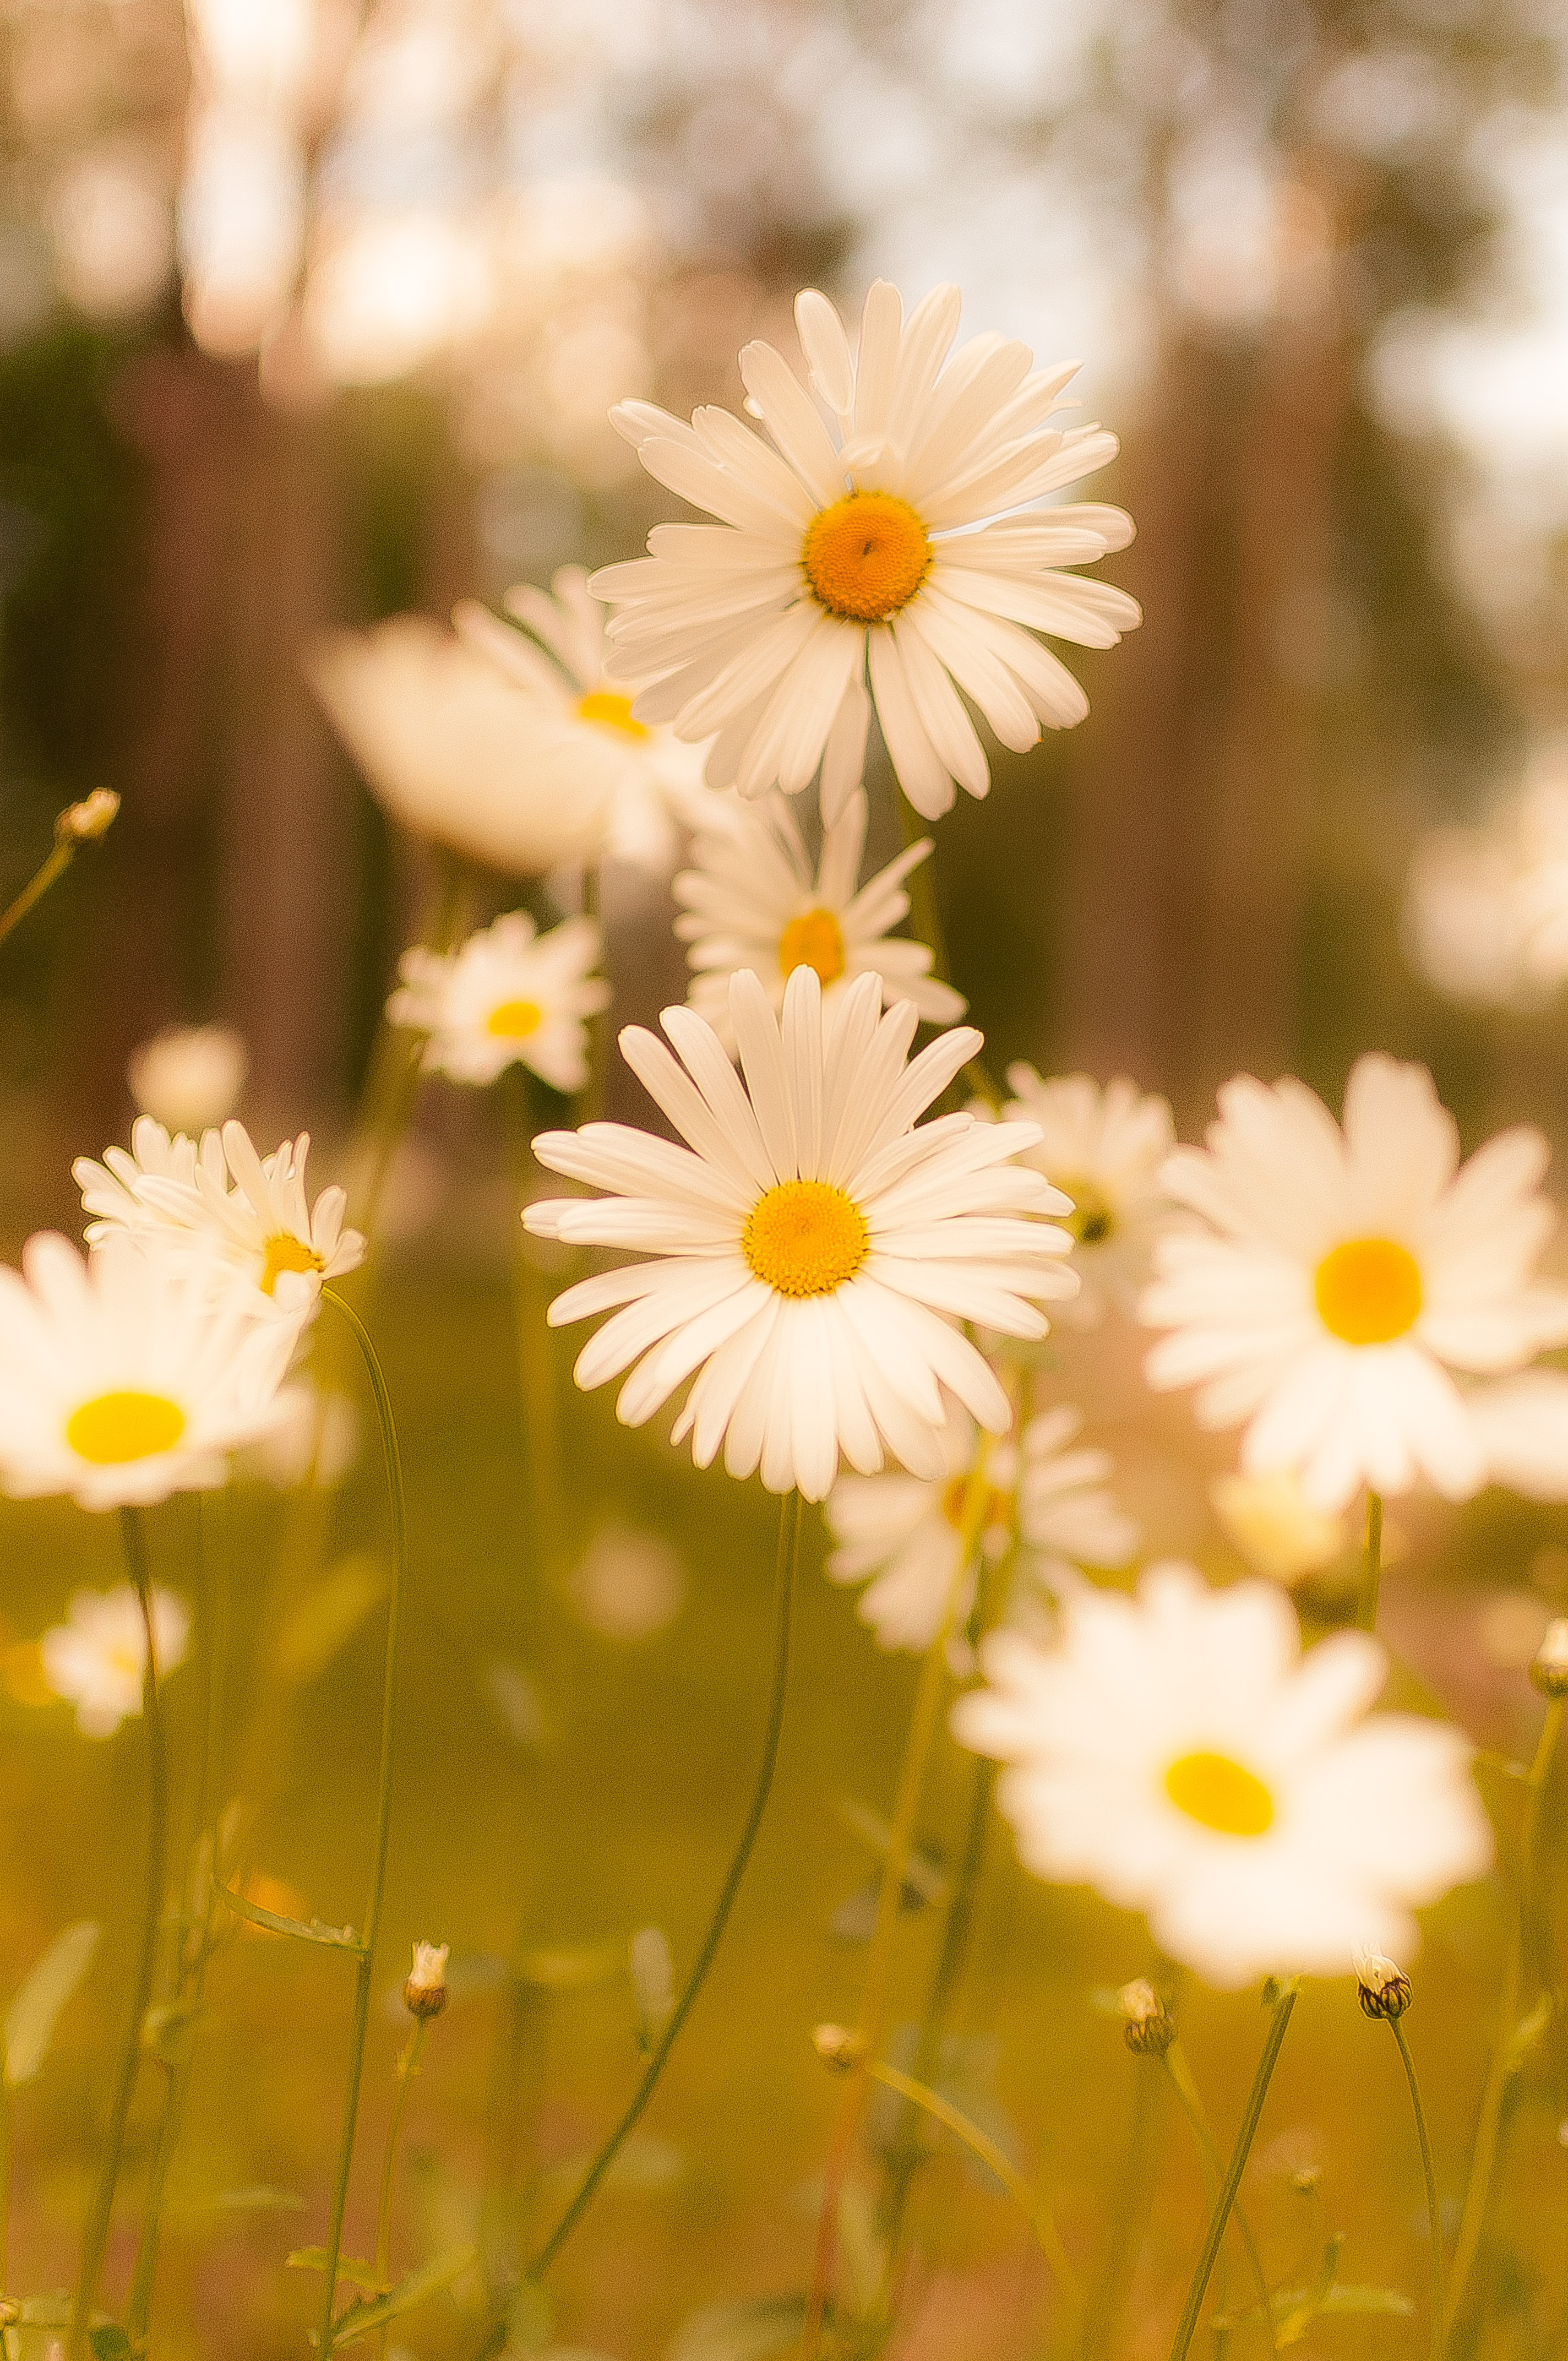 200 Amazing Daisy Photos Pexels Free Stock Photos